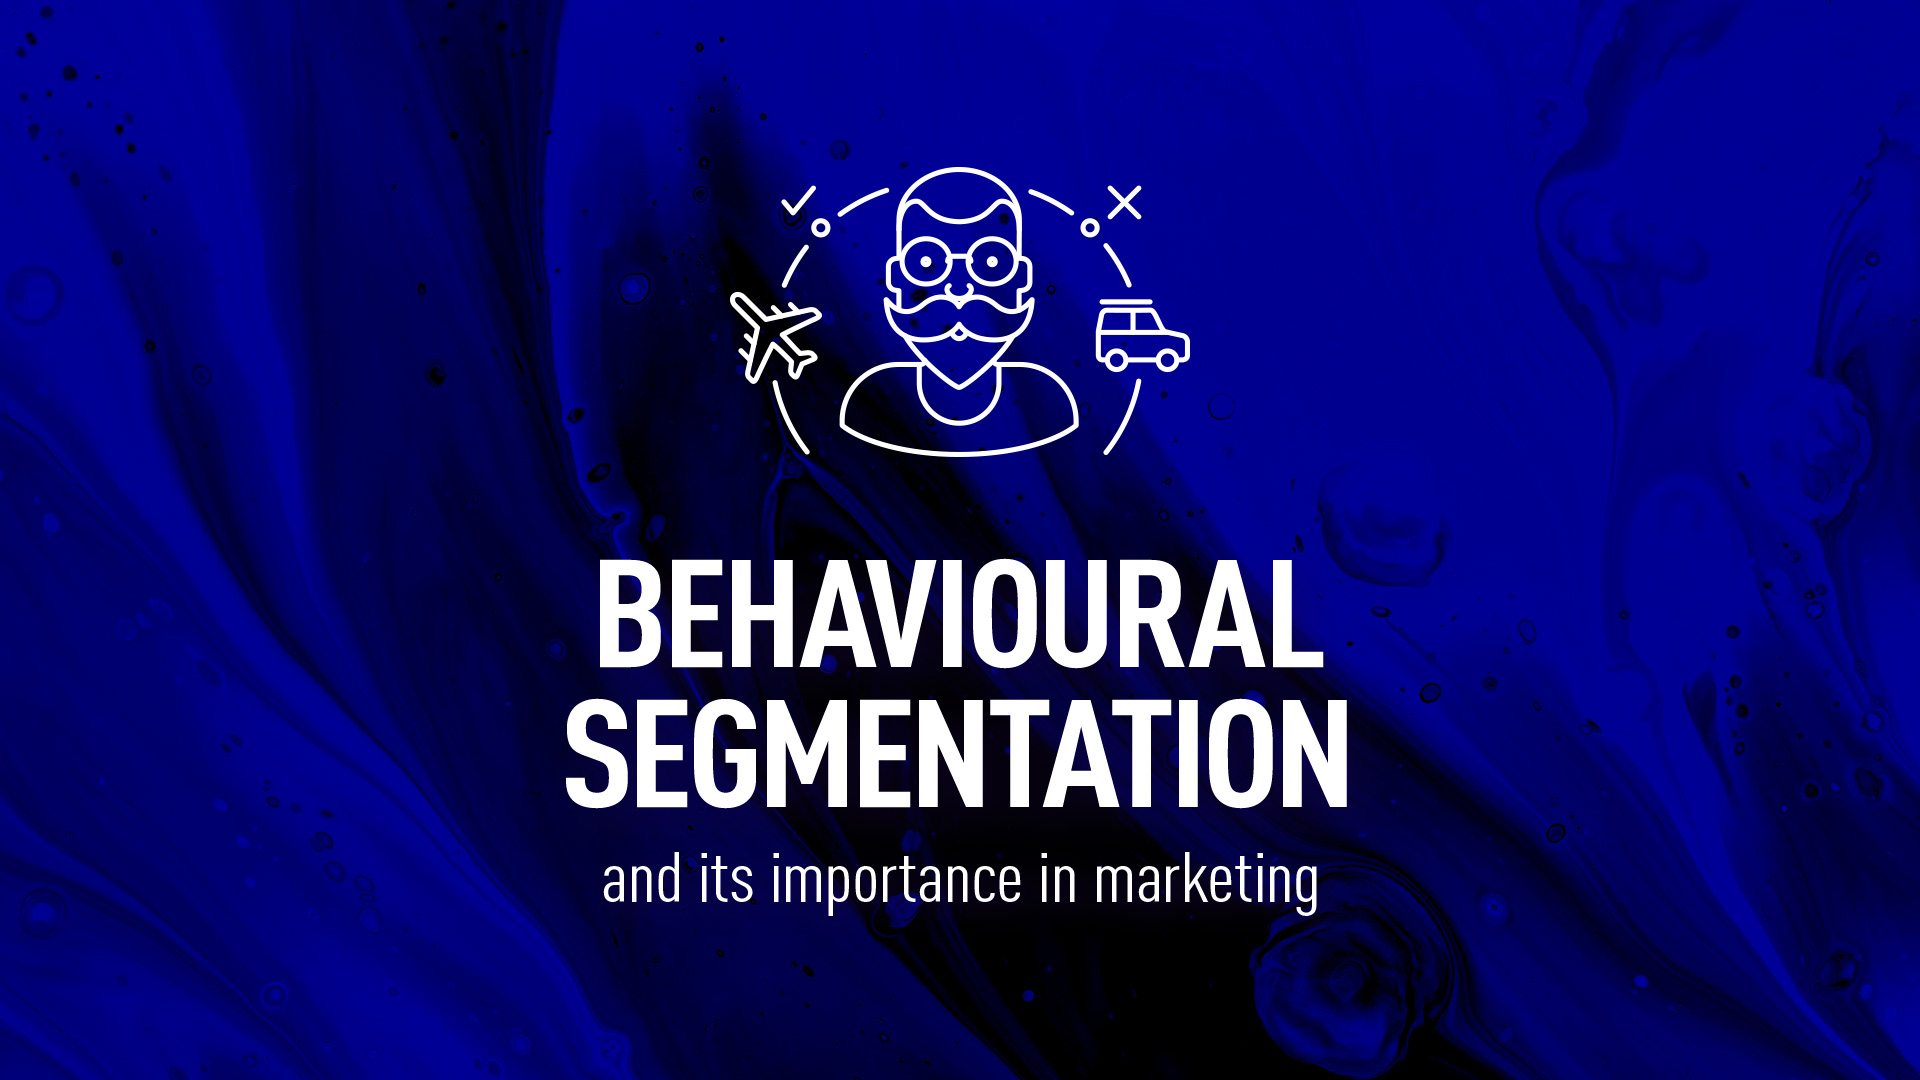 The importance of behavioural segmentation in marketing